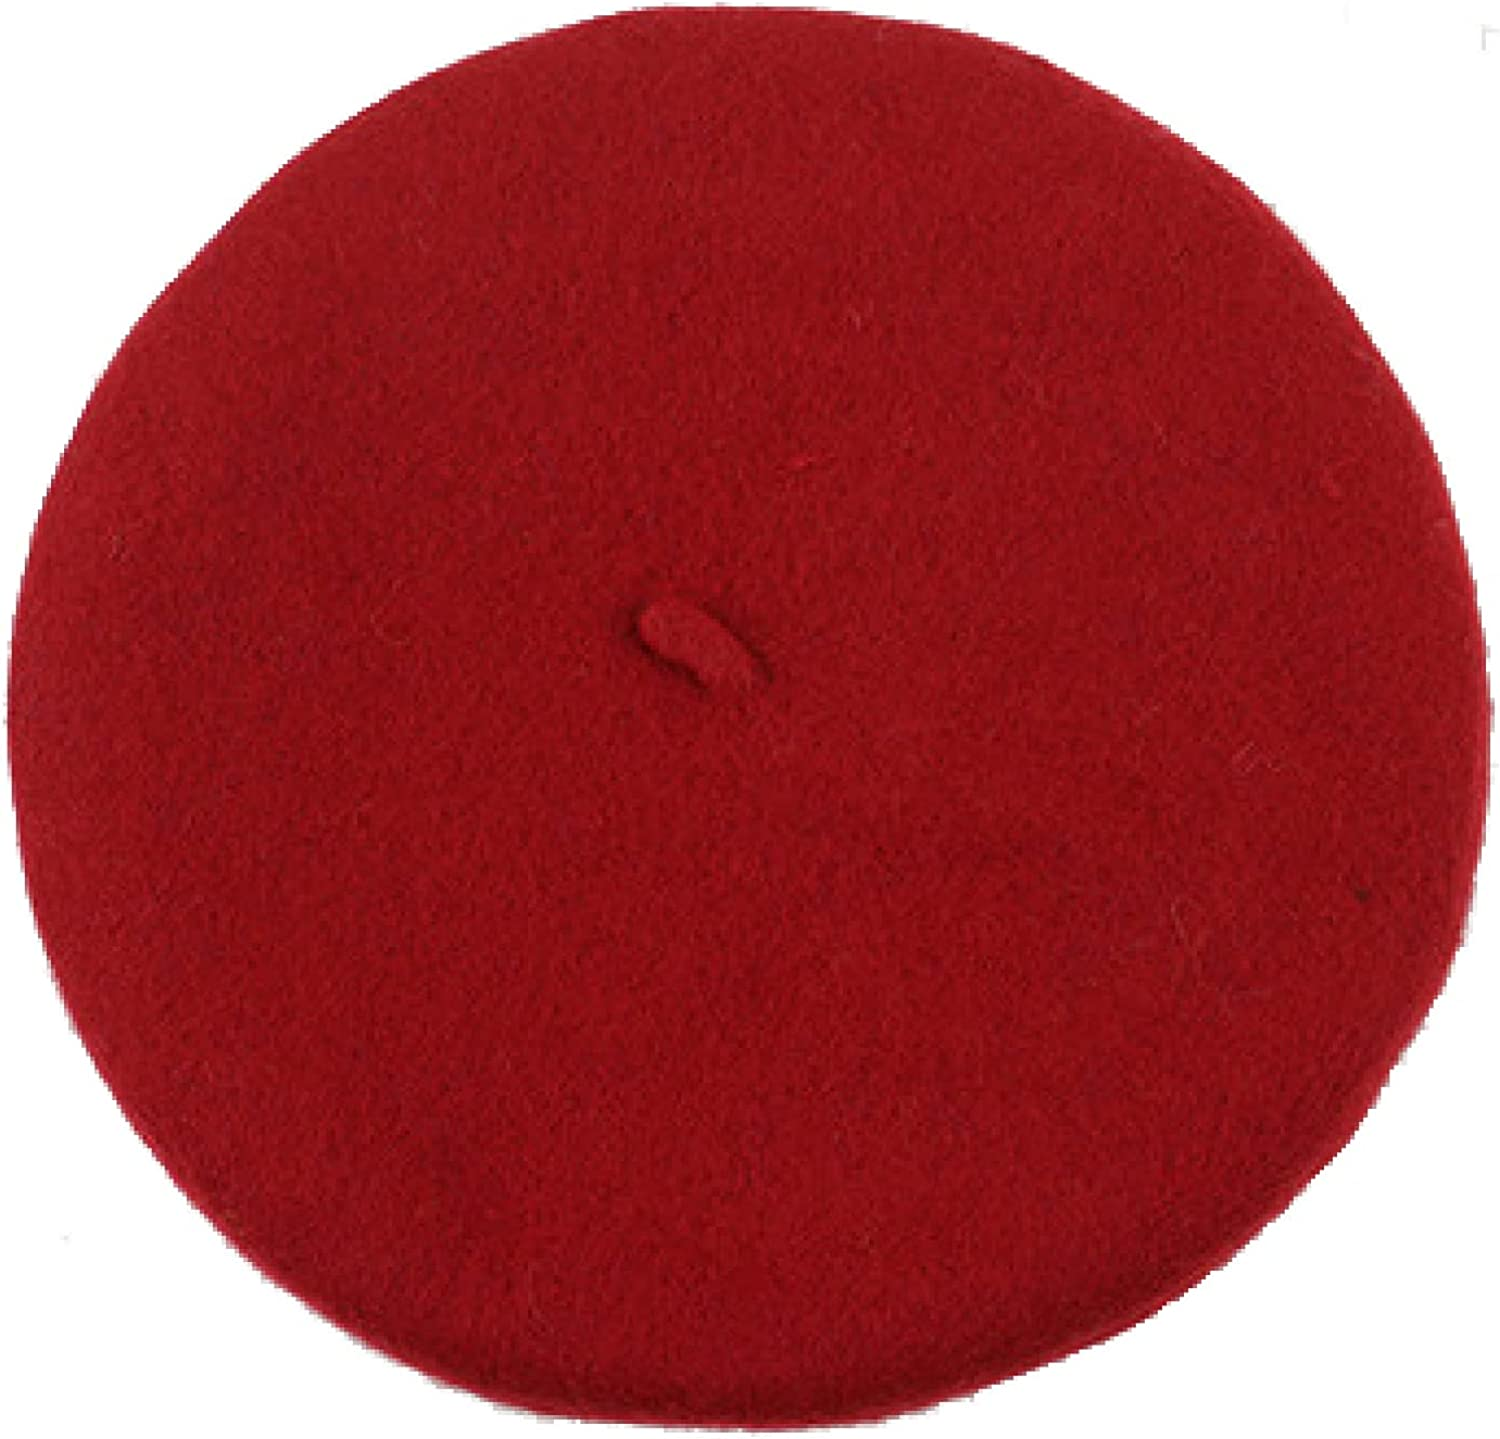 AOBRICON 2 to 8 Years Old Kids Wool Beret Hats Autumn Winter Black Red Berets Girls Painter Hat